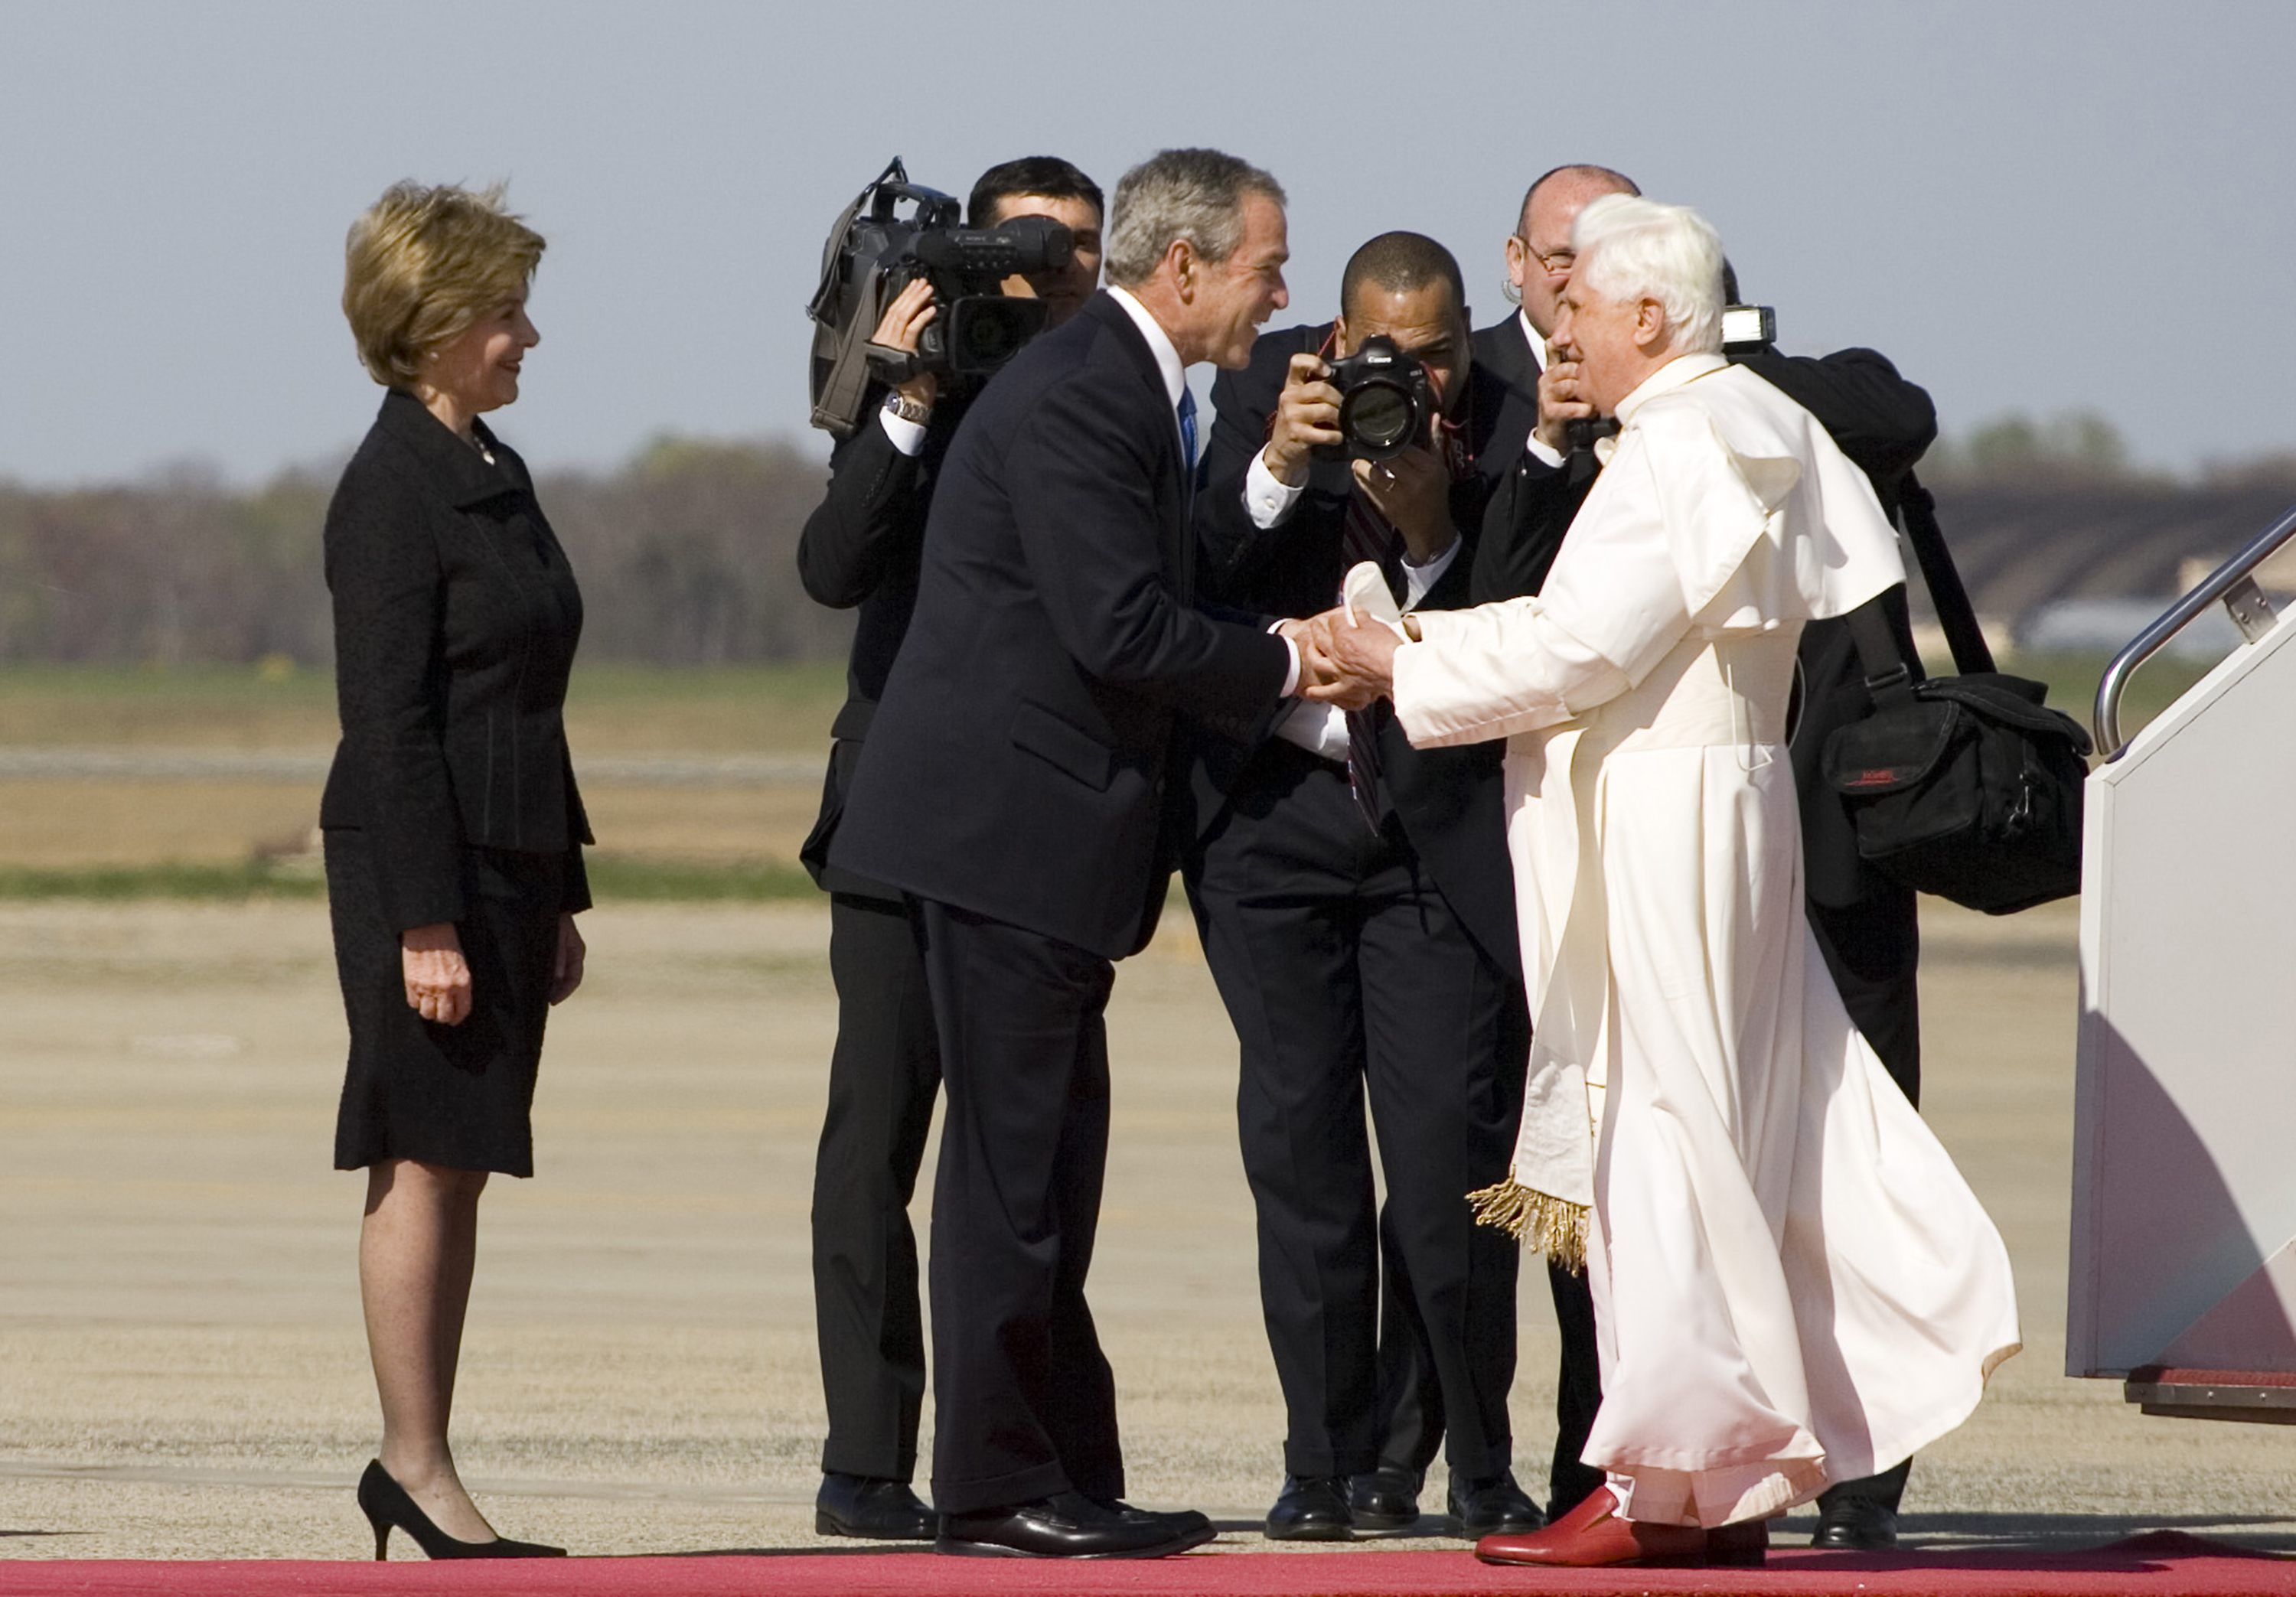 President George W. Bush and Laura Bush Greet Pope Benedict XVI on His Arrival at Andrews Air Force Base, Maryland, 04/15/2008. National Archives Identifier 7582808